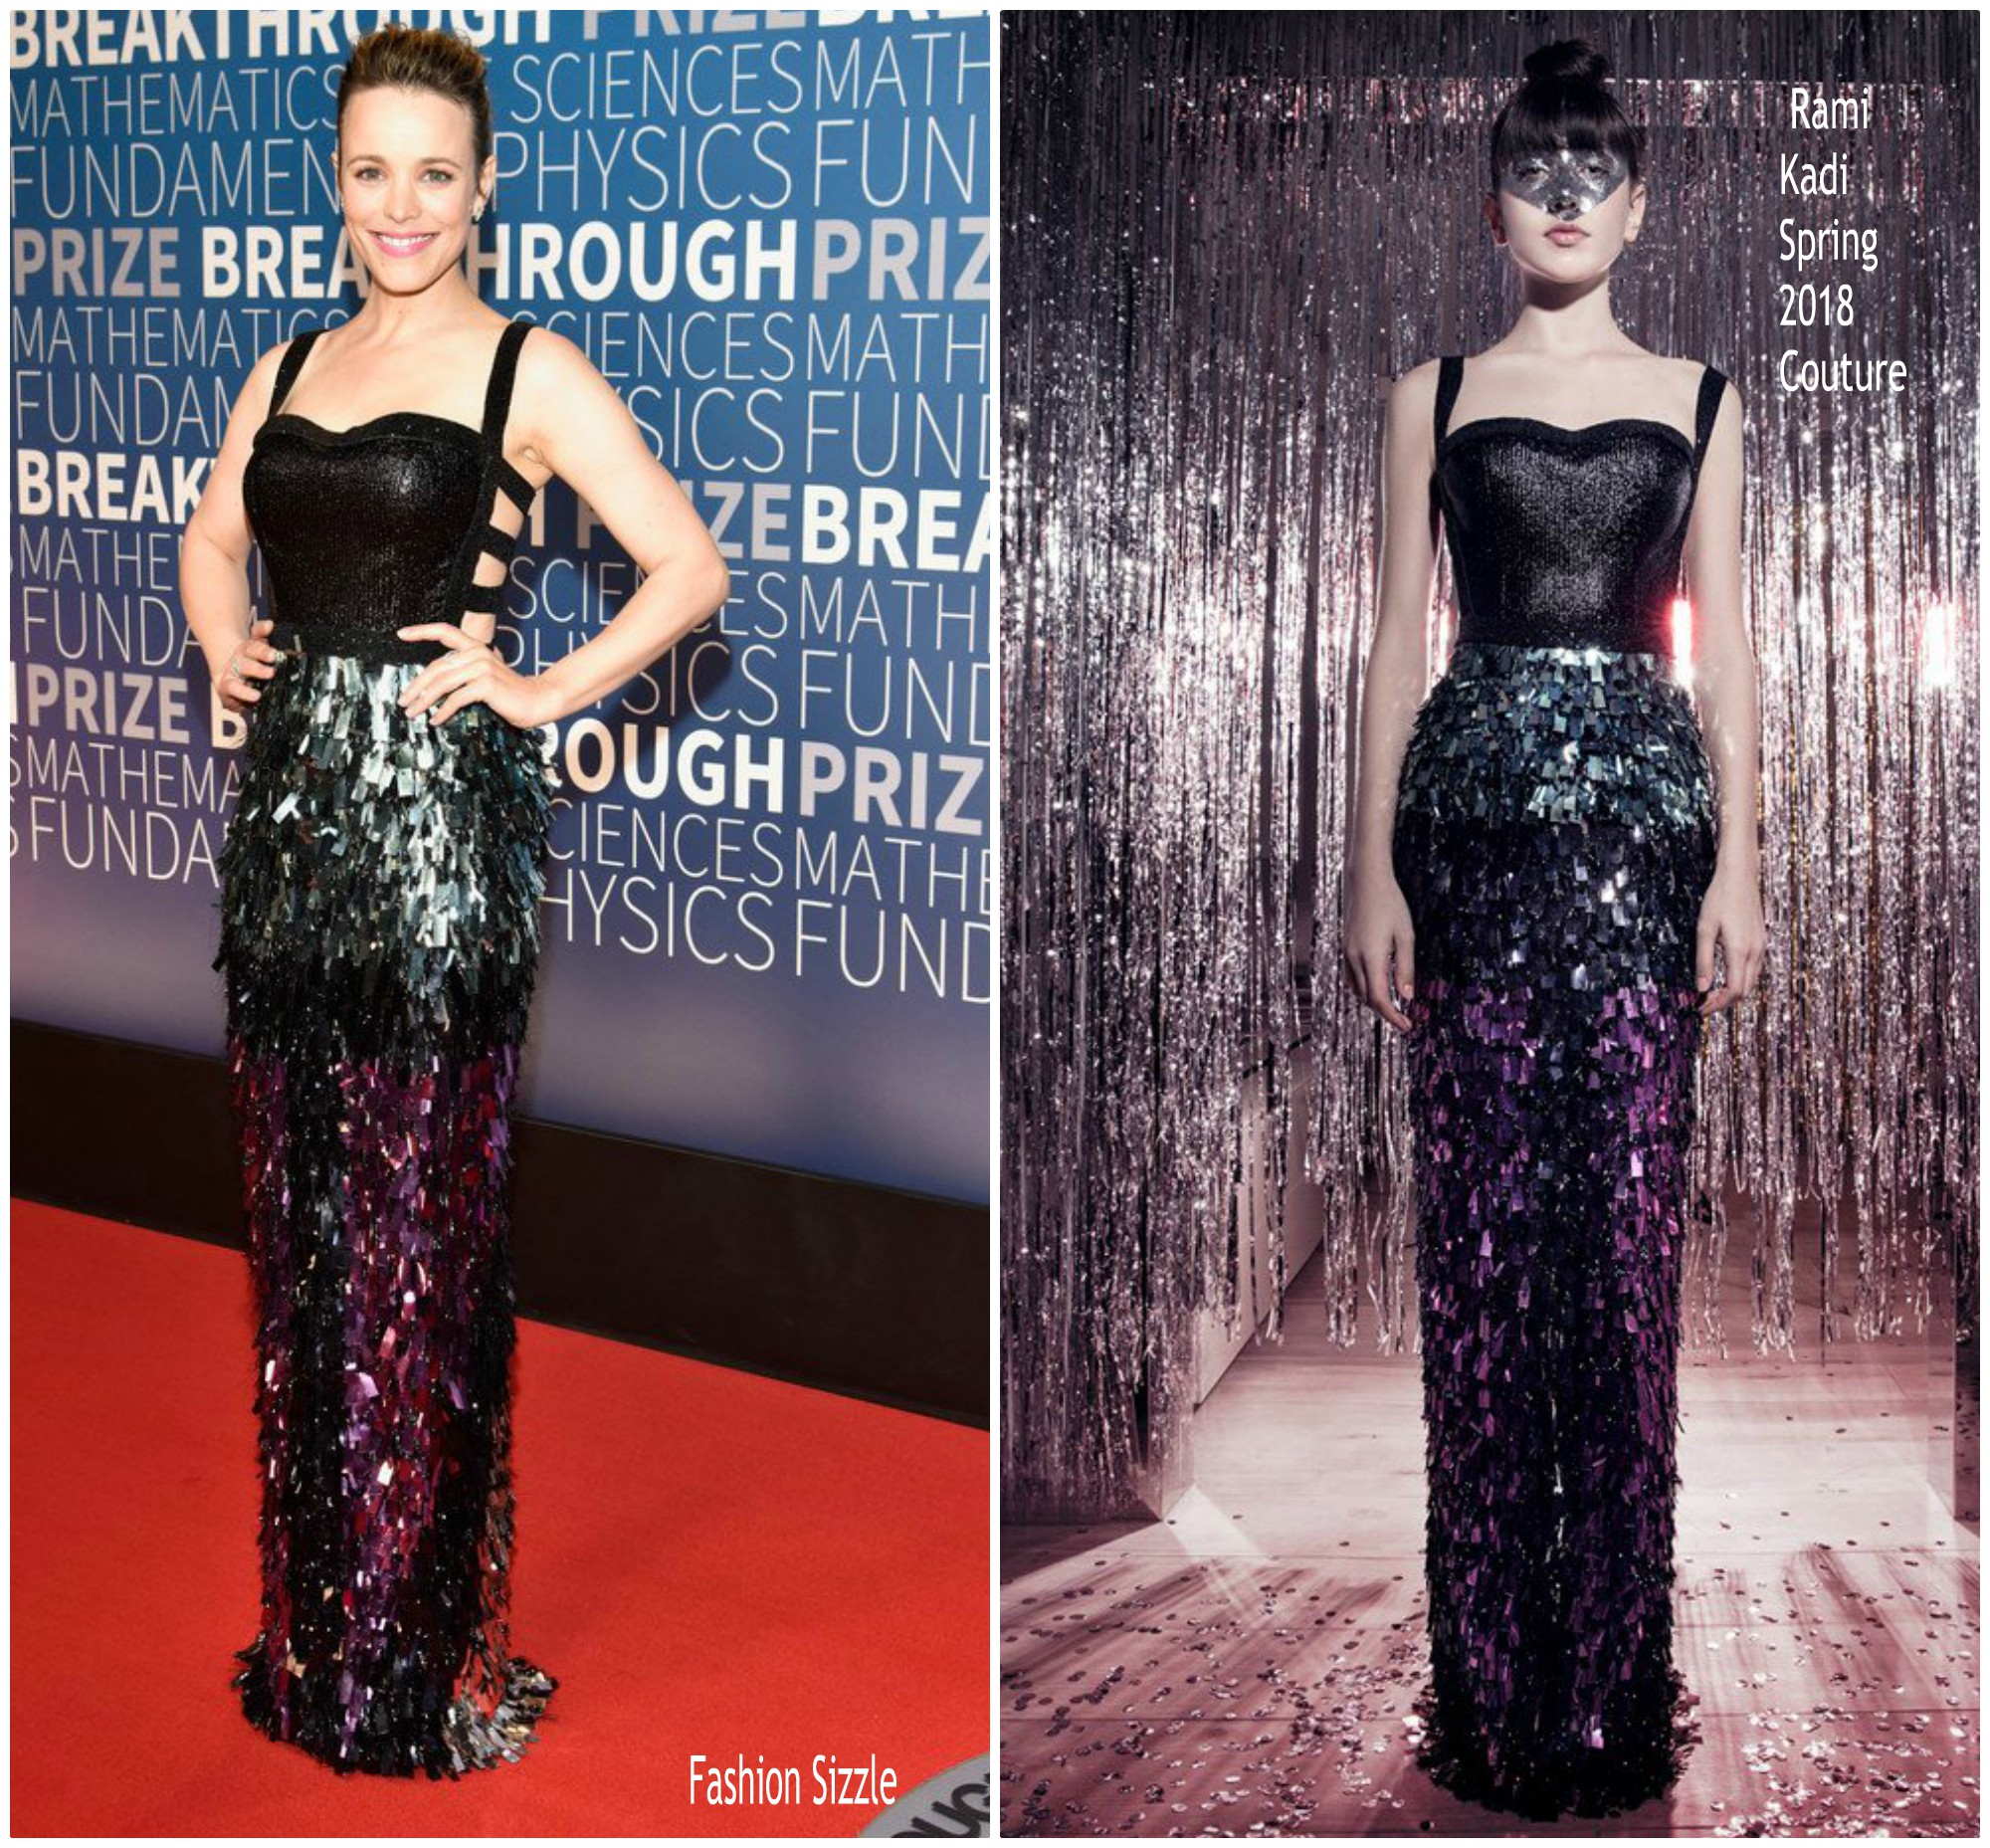 rachel-adams-in-rami-kadi-couture-2019-breakthrough-prize-ceremony